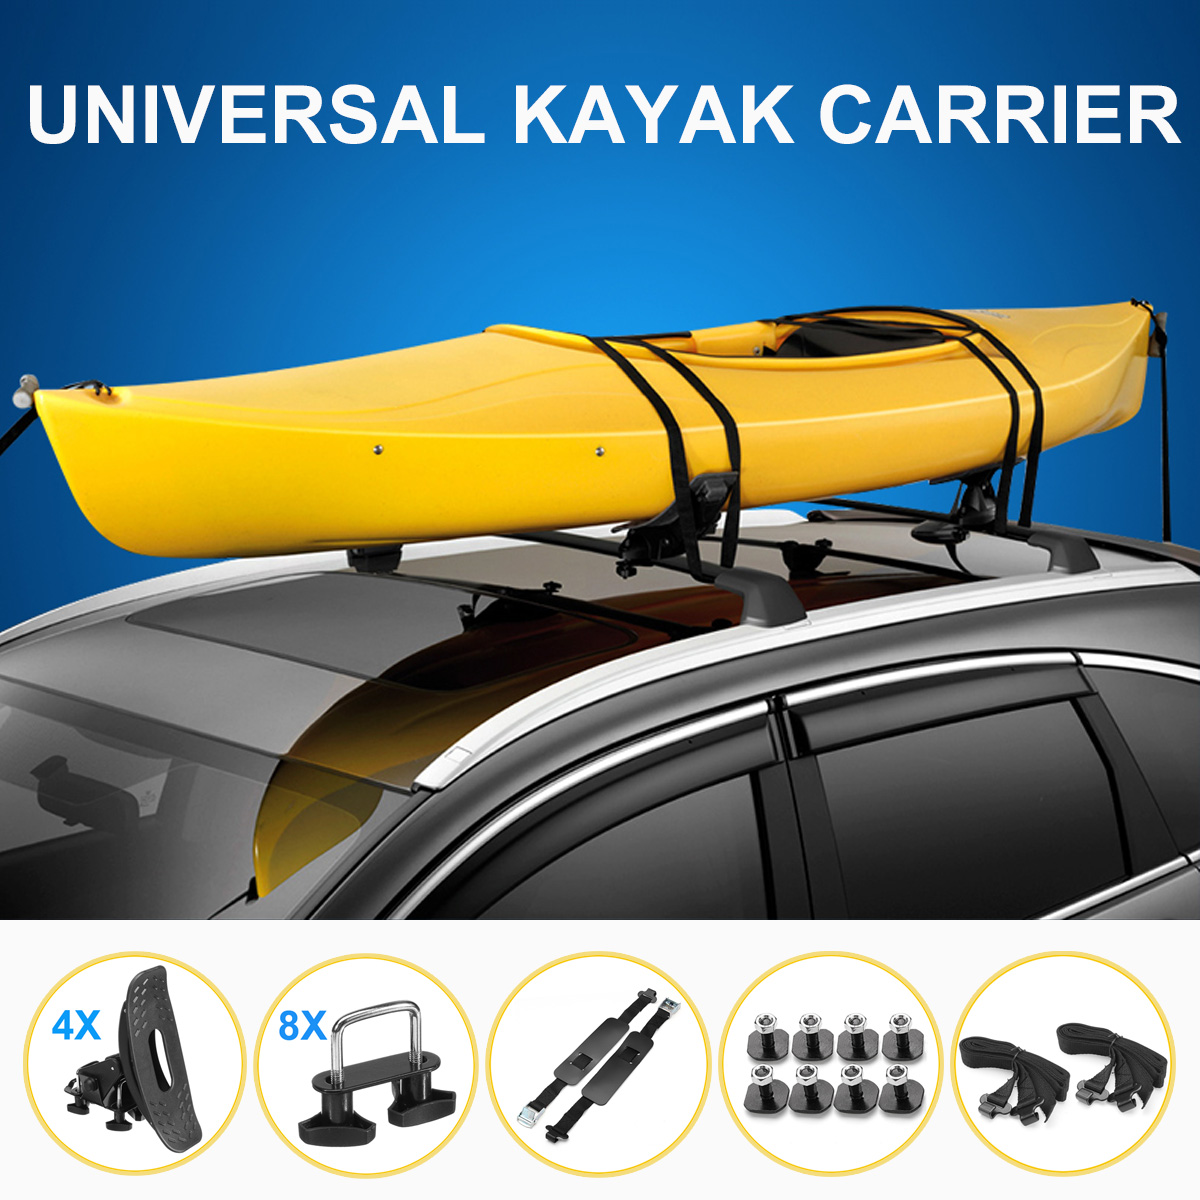 Kayak Roof Carrier >> Universal Kayak Rack Holder Kayak Carrier Saddle Watercraft